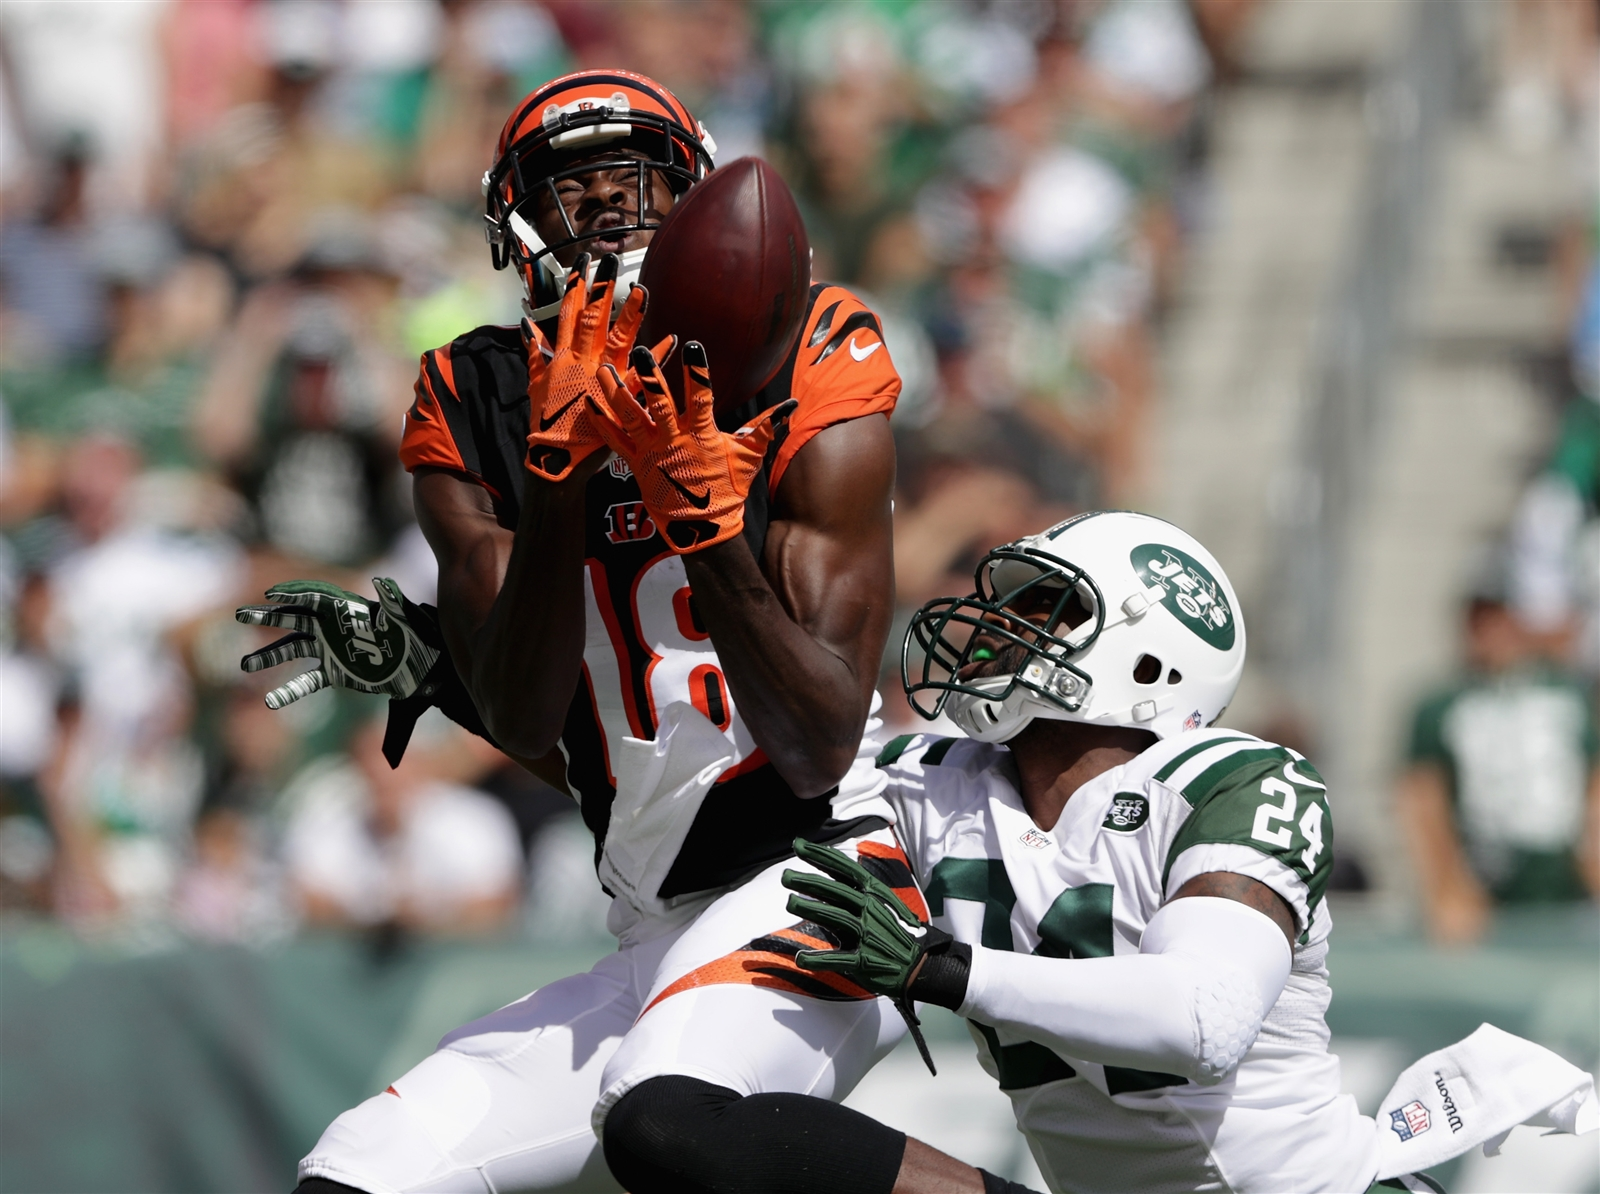 1. Maybe Darrelle Revis isnu2019t Darrelle Revis anymore. The New York Jetsu2019 All-World cornerback struggled mightily in his teamu2019s 23-22 loss to the Cincinnati Bengals on Sunday in the season openers. Bengals receiver A.J. Green caught 12 passes for 180 yards (including a touchdown, pictured). ...